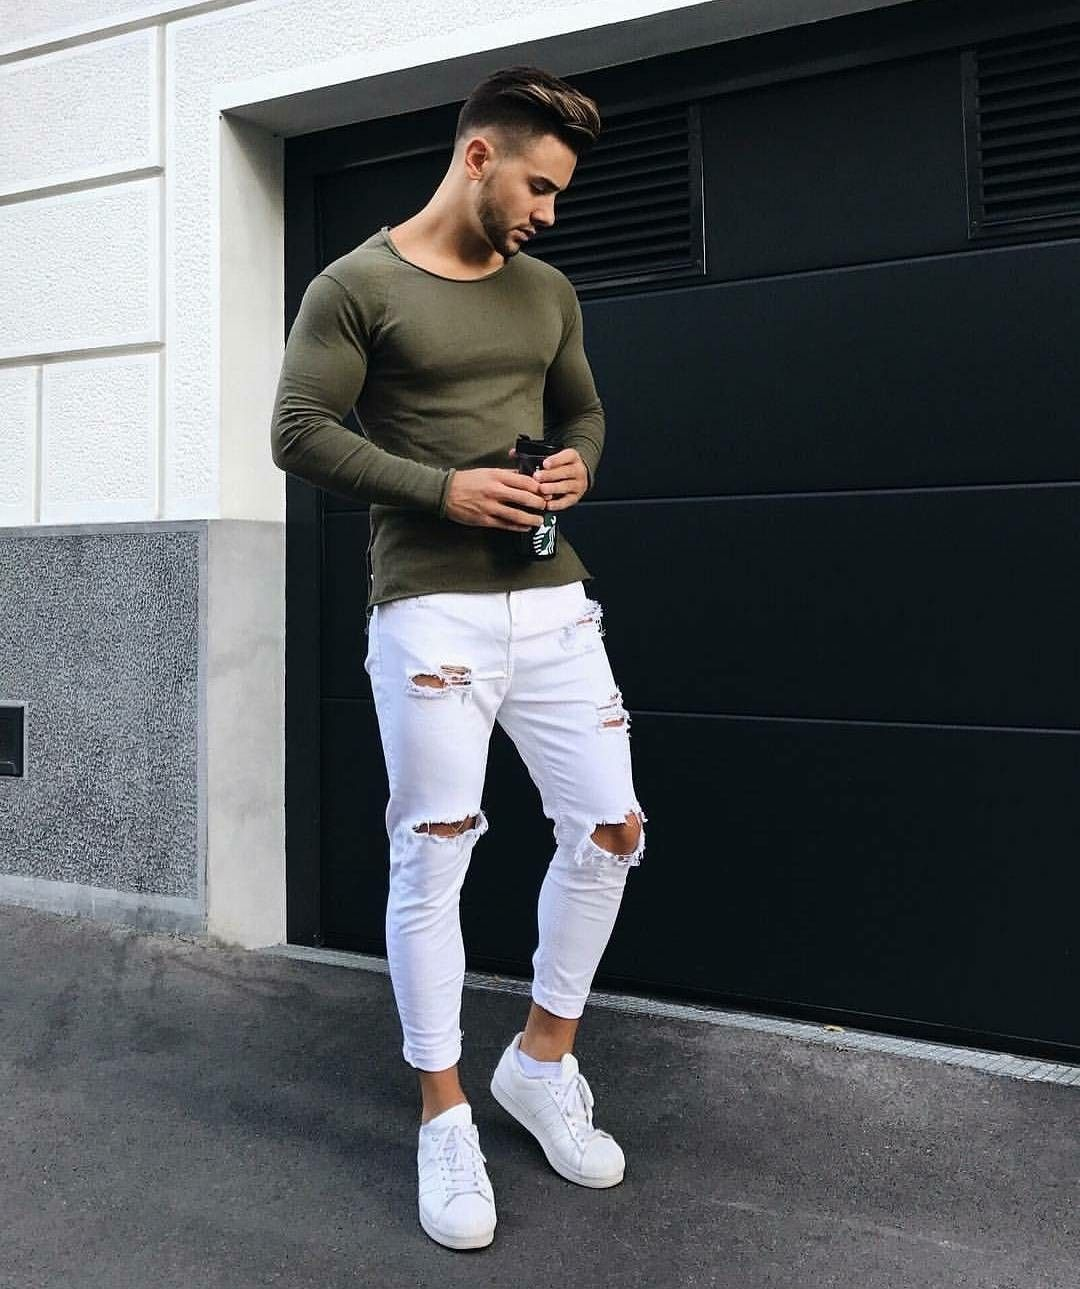 Men Style Fashion Look Clothing Clothes Man Ropa Moda Para Hombres Outfit Models Moda Masculina Ur Estilo De Ropa Hombre Moda Casual Hombre Moda Hipster Hombre